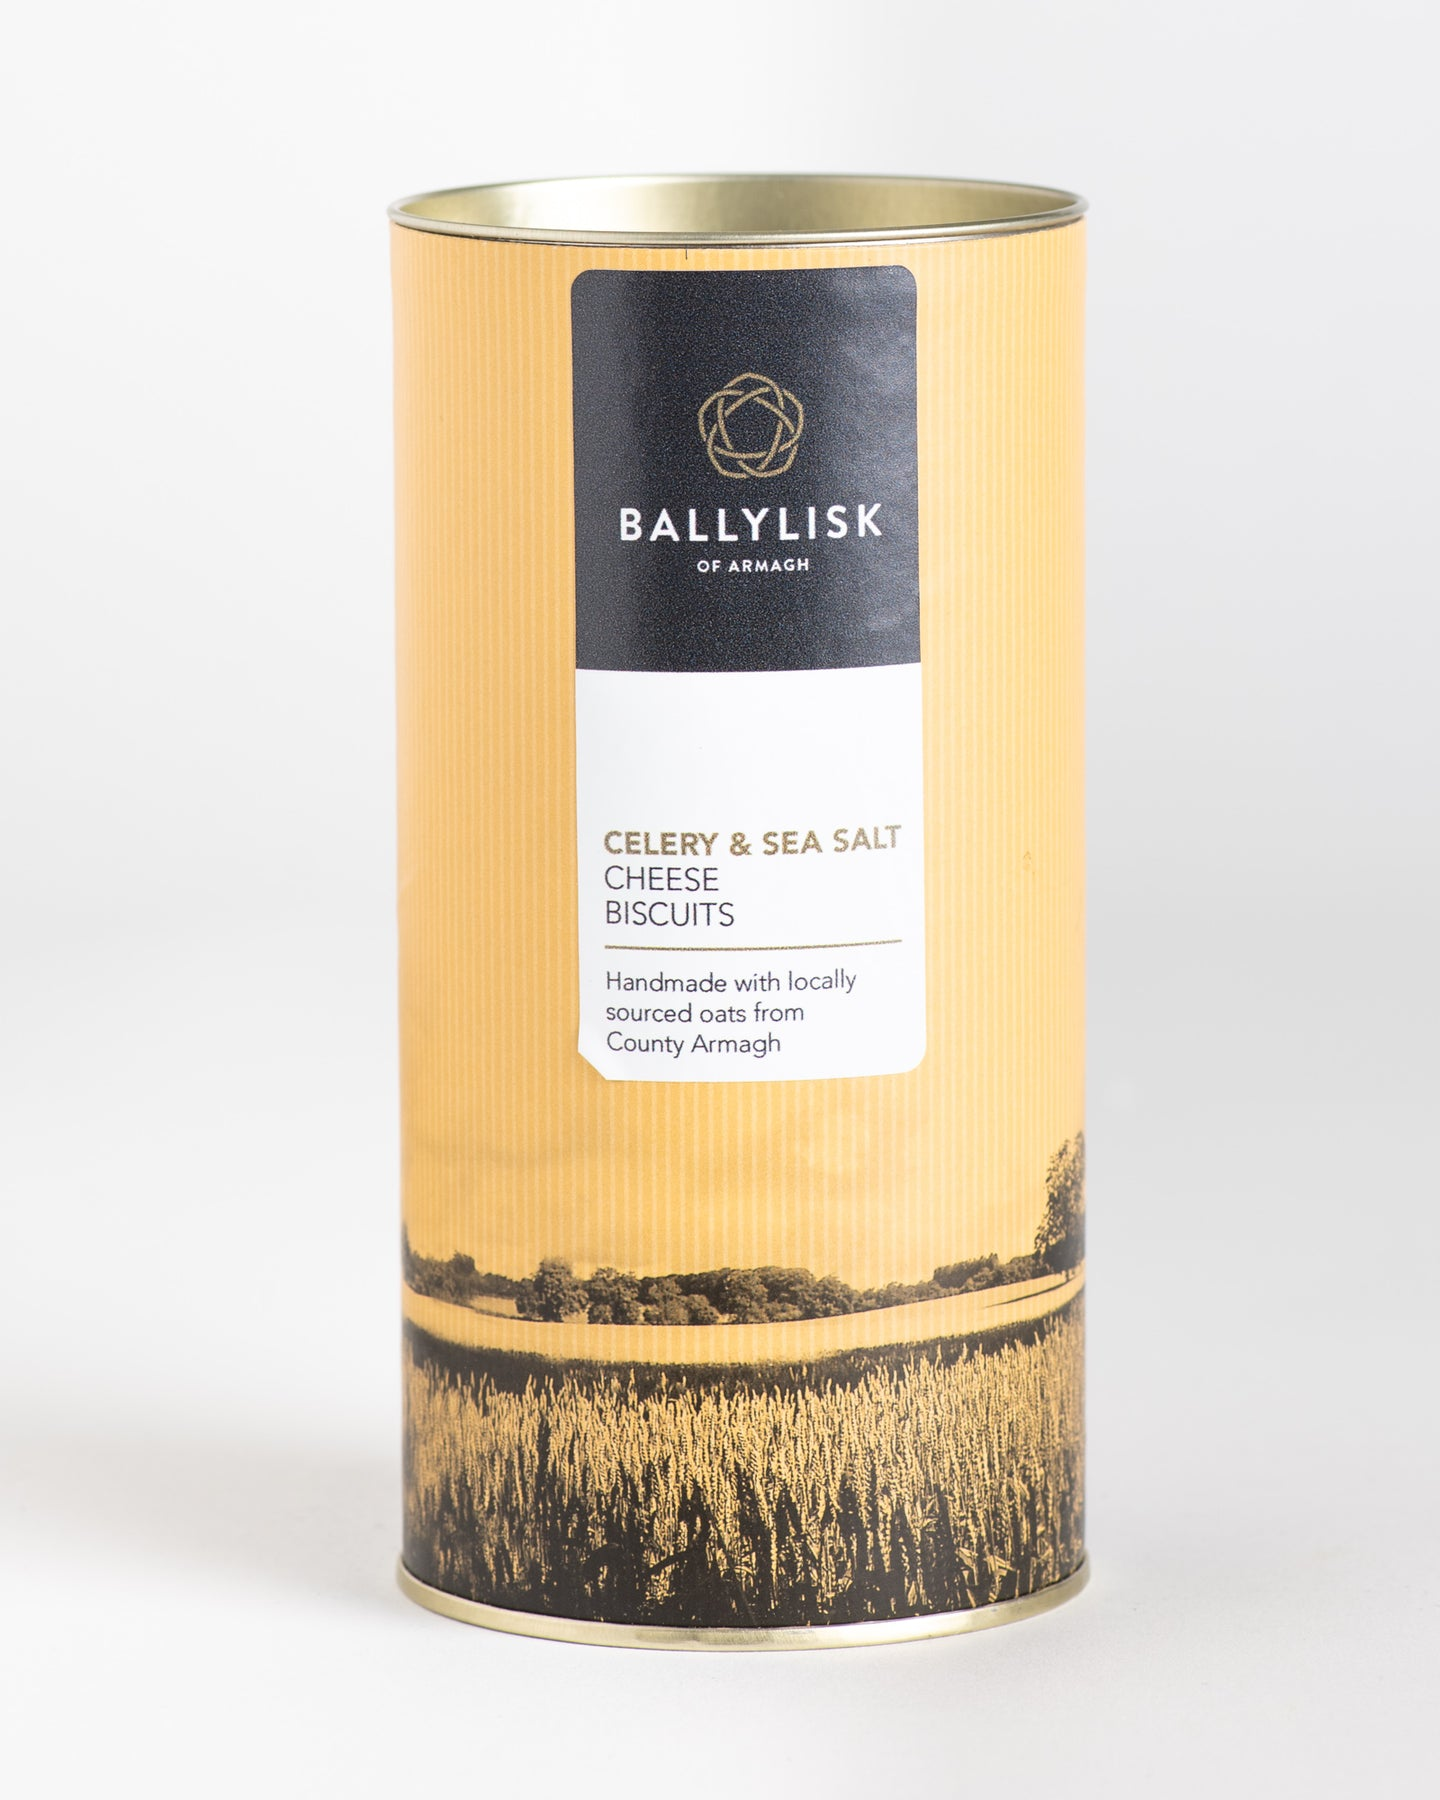 Ballylisk - Celery & Sea Salt Cheese Biscuits